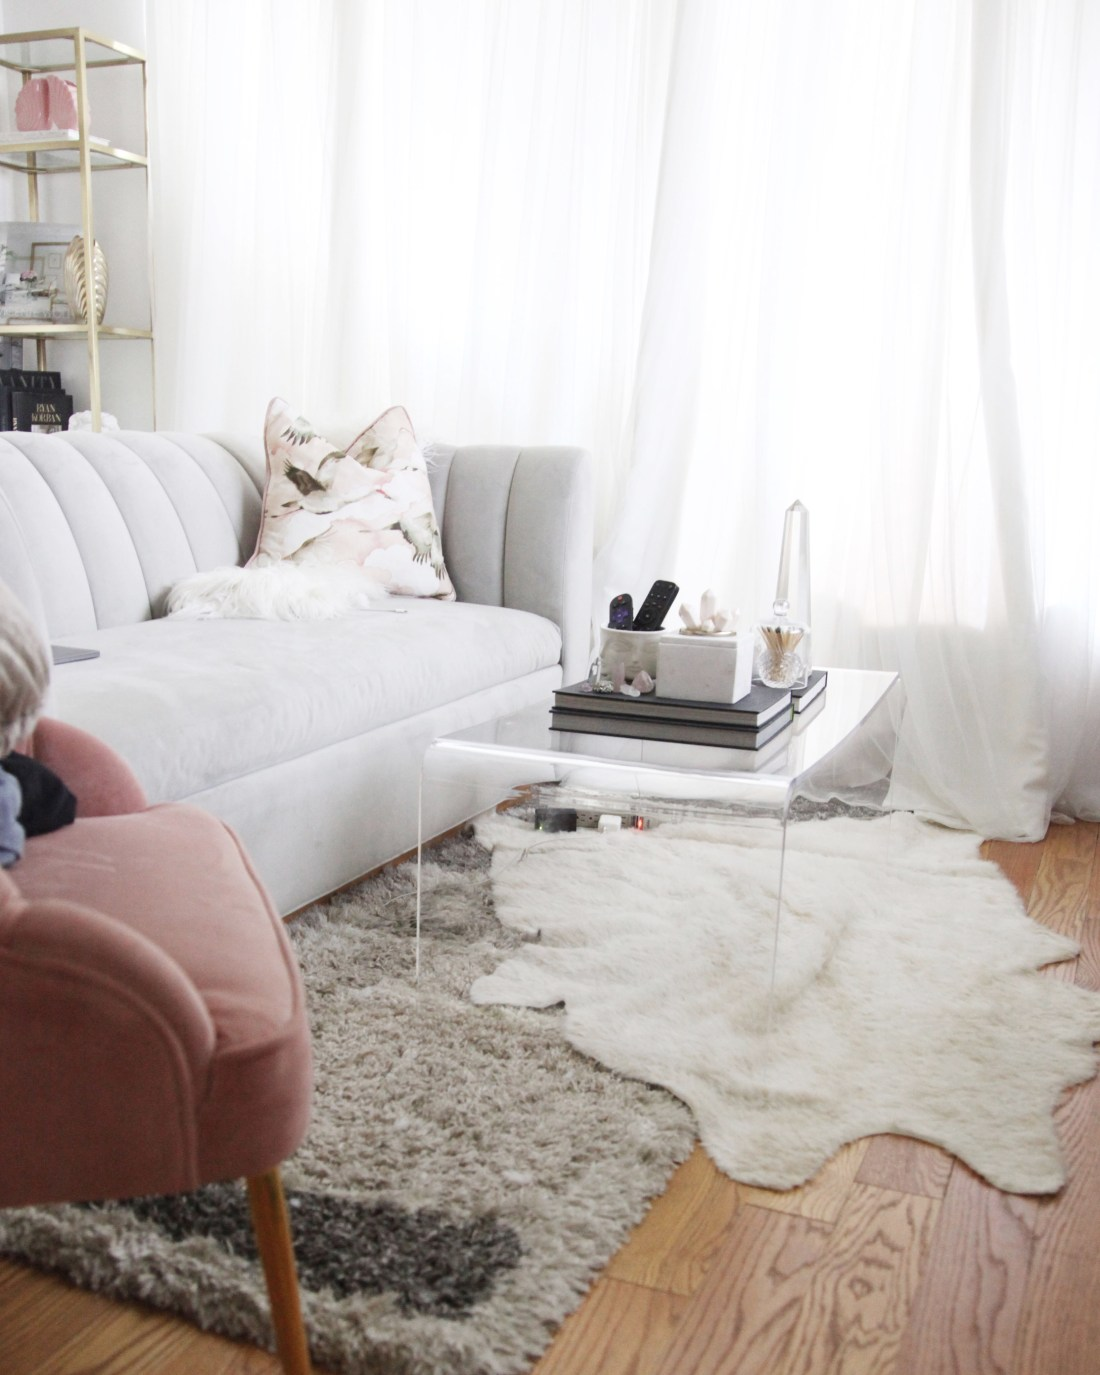 Live in a small apartment? Want to add more character and personality? This trick will make your space feel chic and unique! #rentalhomedecoratingdiy #smalllivingroomideas  #smallapartmentdecorating #smallapartmentideas